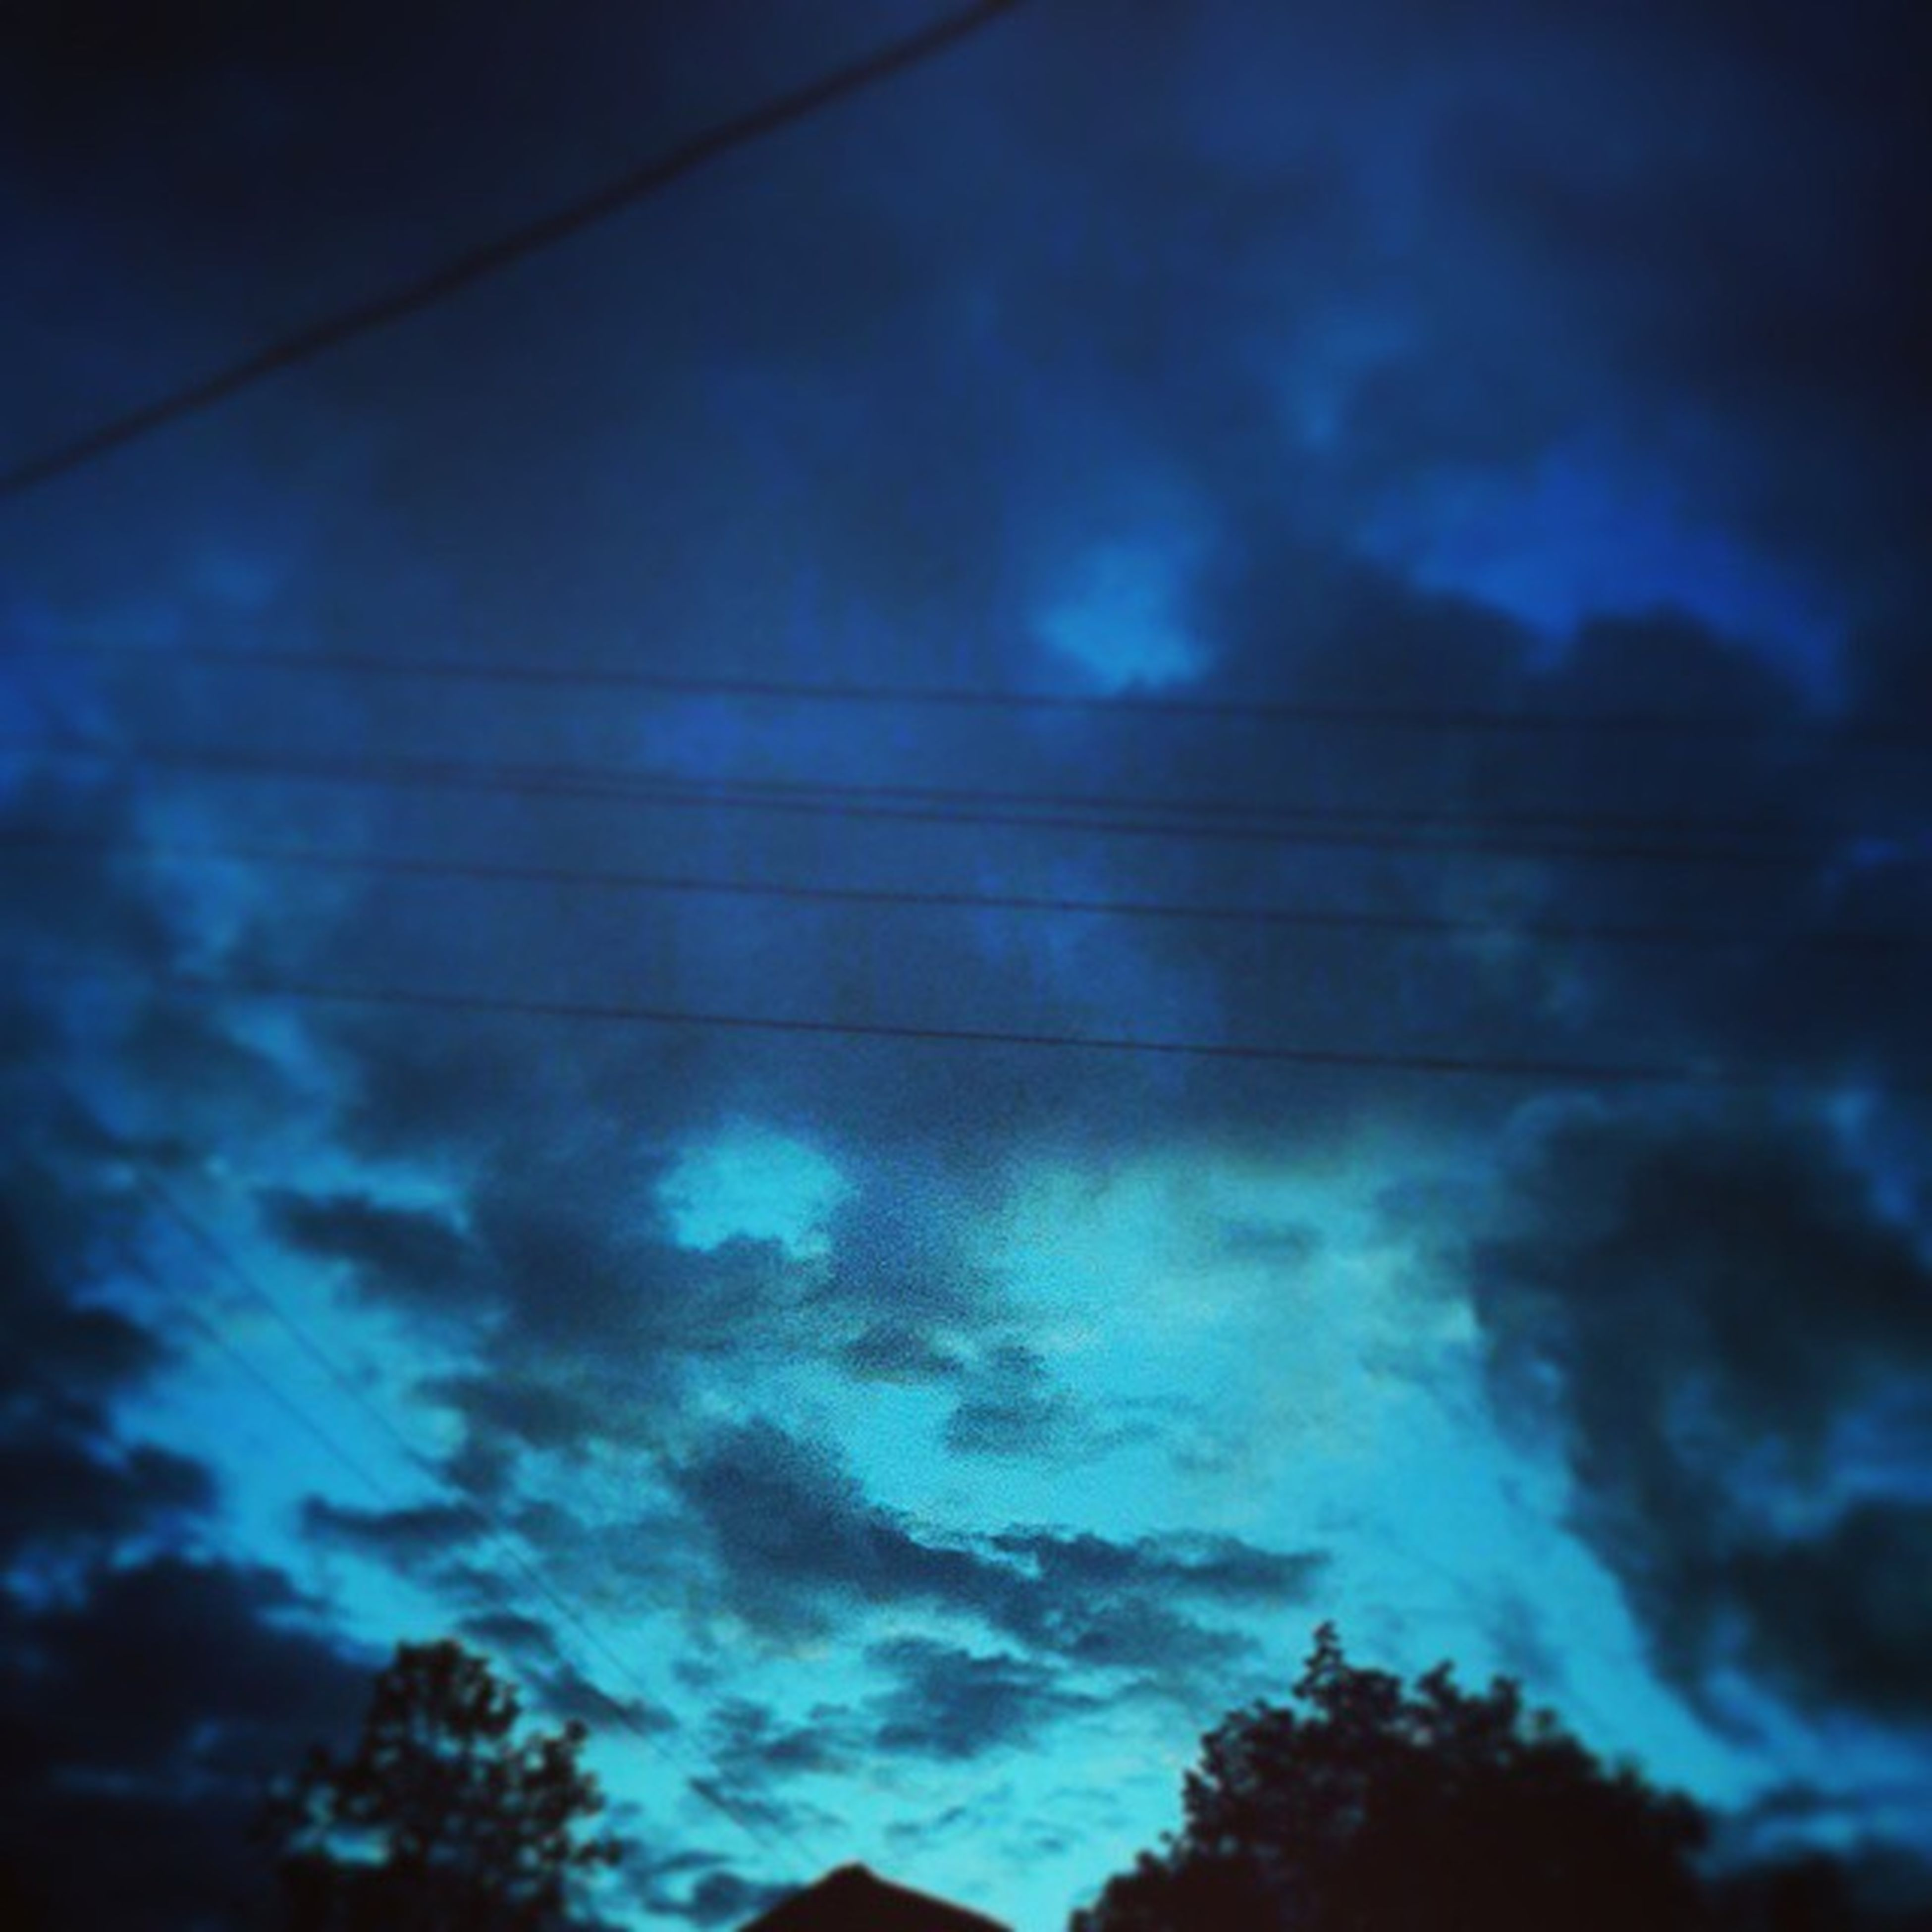 low angle view, sky, cloud - sky, cloudy, beauty in nature, blue, weather, cloud, nature, scenics, silhouette, tranquility, storm cloud, dusk, cloudscape, tranquil scene, overcast, dramatic sky, outdoors, power line